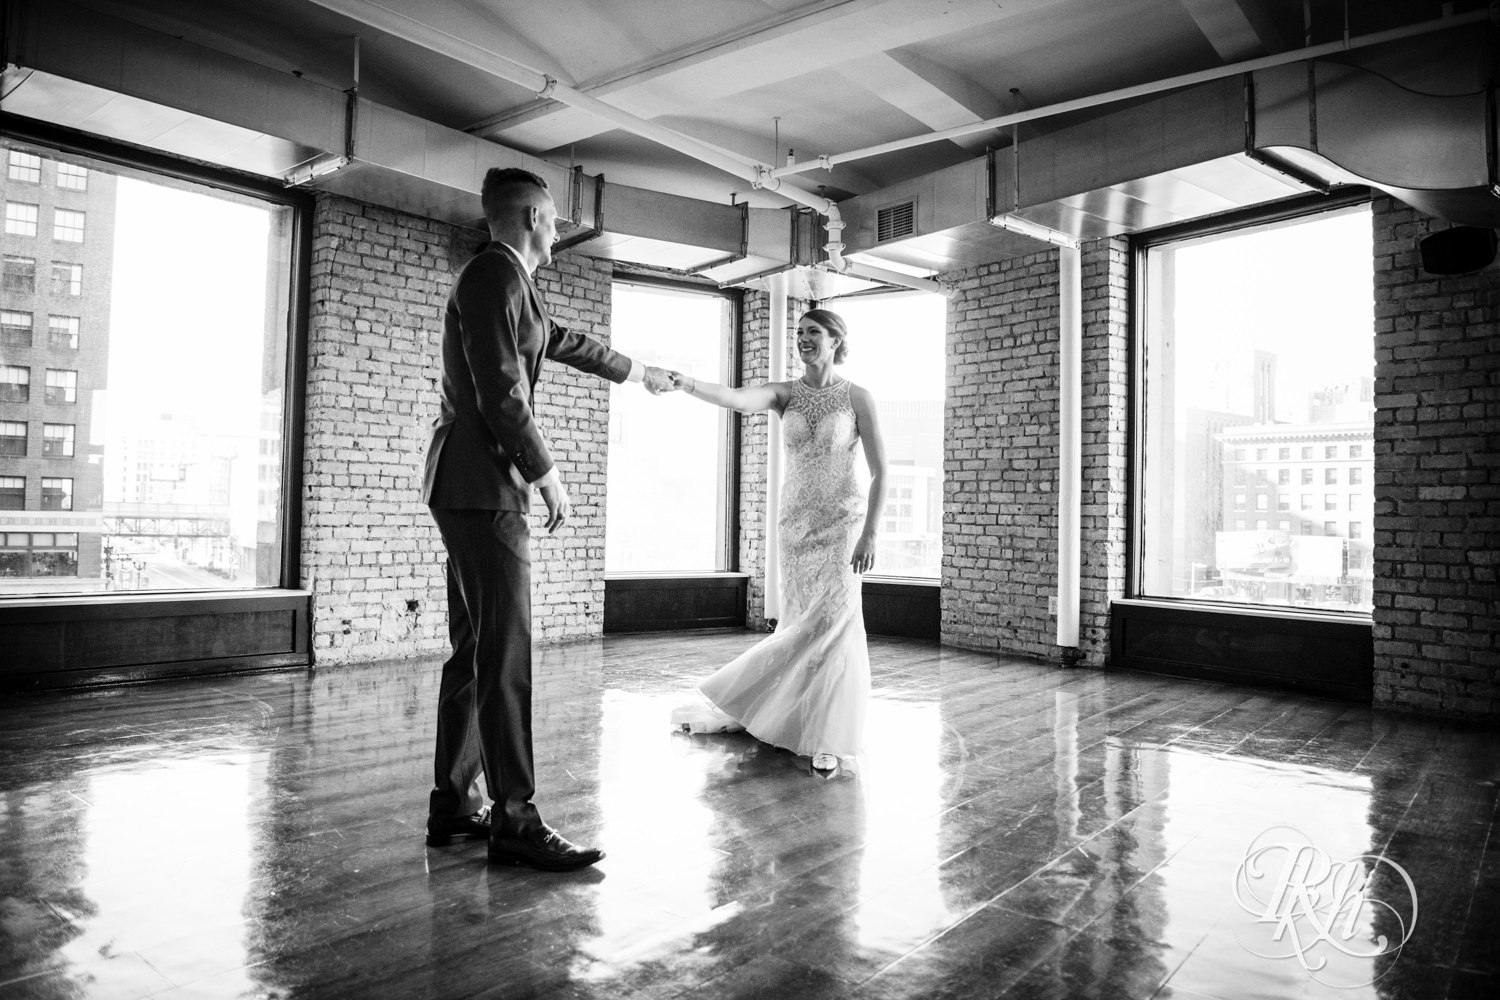 Jillian & Jared - Minnesota Wedding Photography - Lumber Exchange Event Center - RKH Images - Blog (19 of 87).jpg